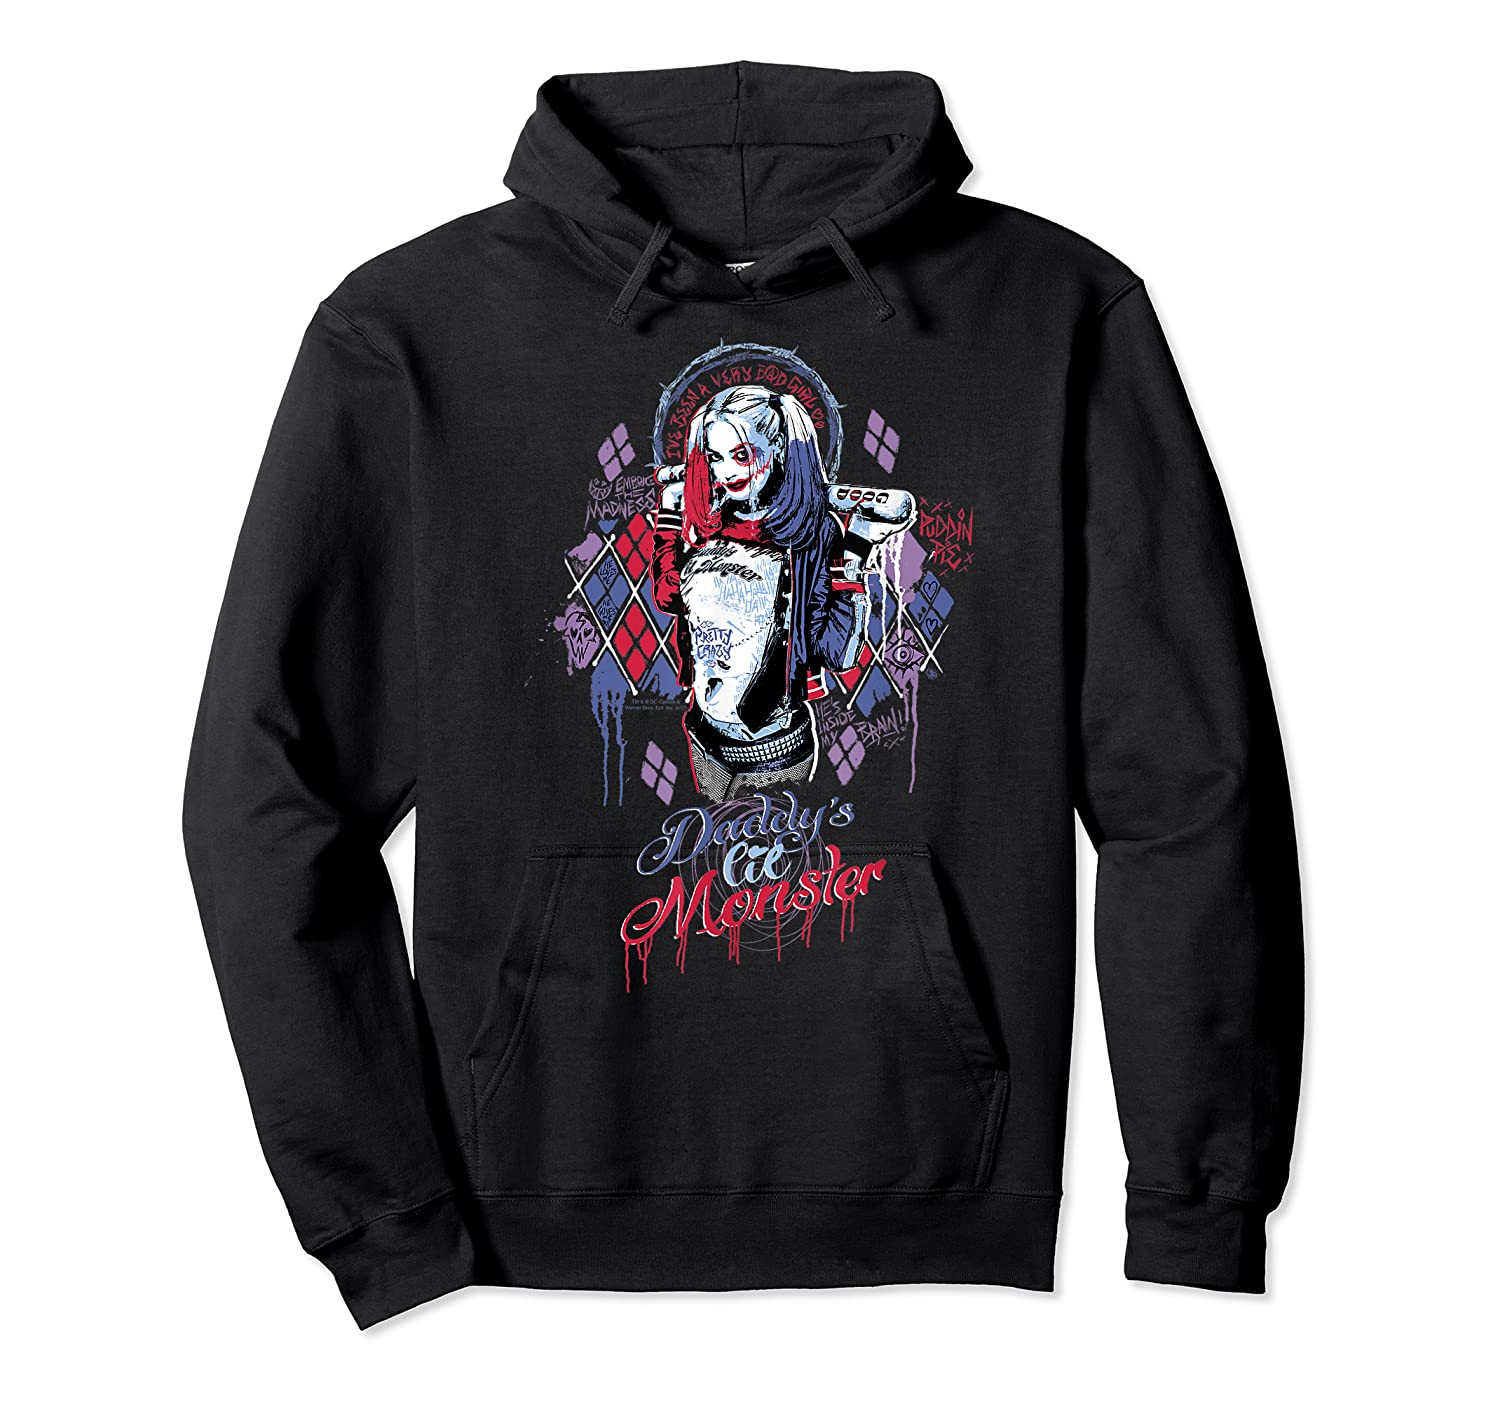 Suicide Squad Harley Quinn Bad Girl Shirts Unisex Pullover Hoodie